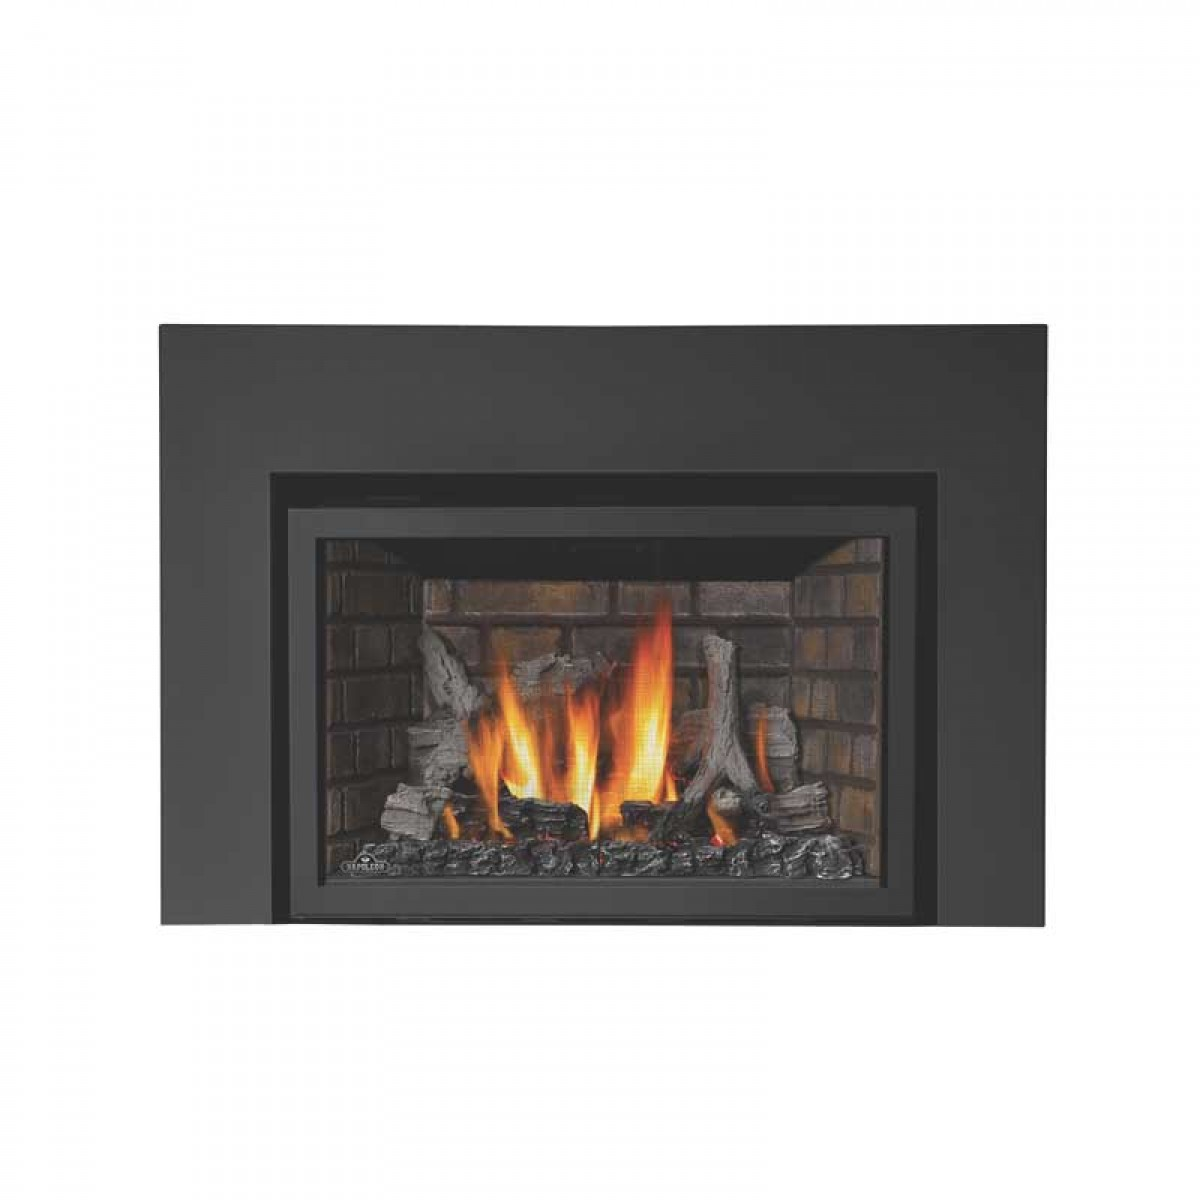 Napoleon Ir3n 1sb Basic Fireplace Insert At Ibuyfireplaces